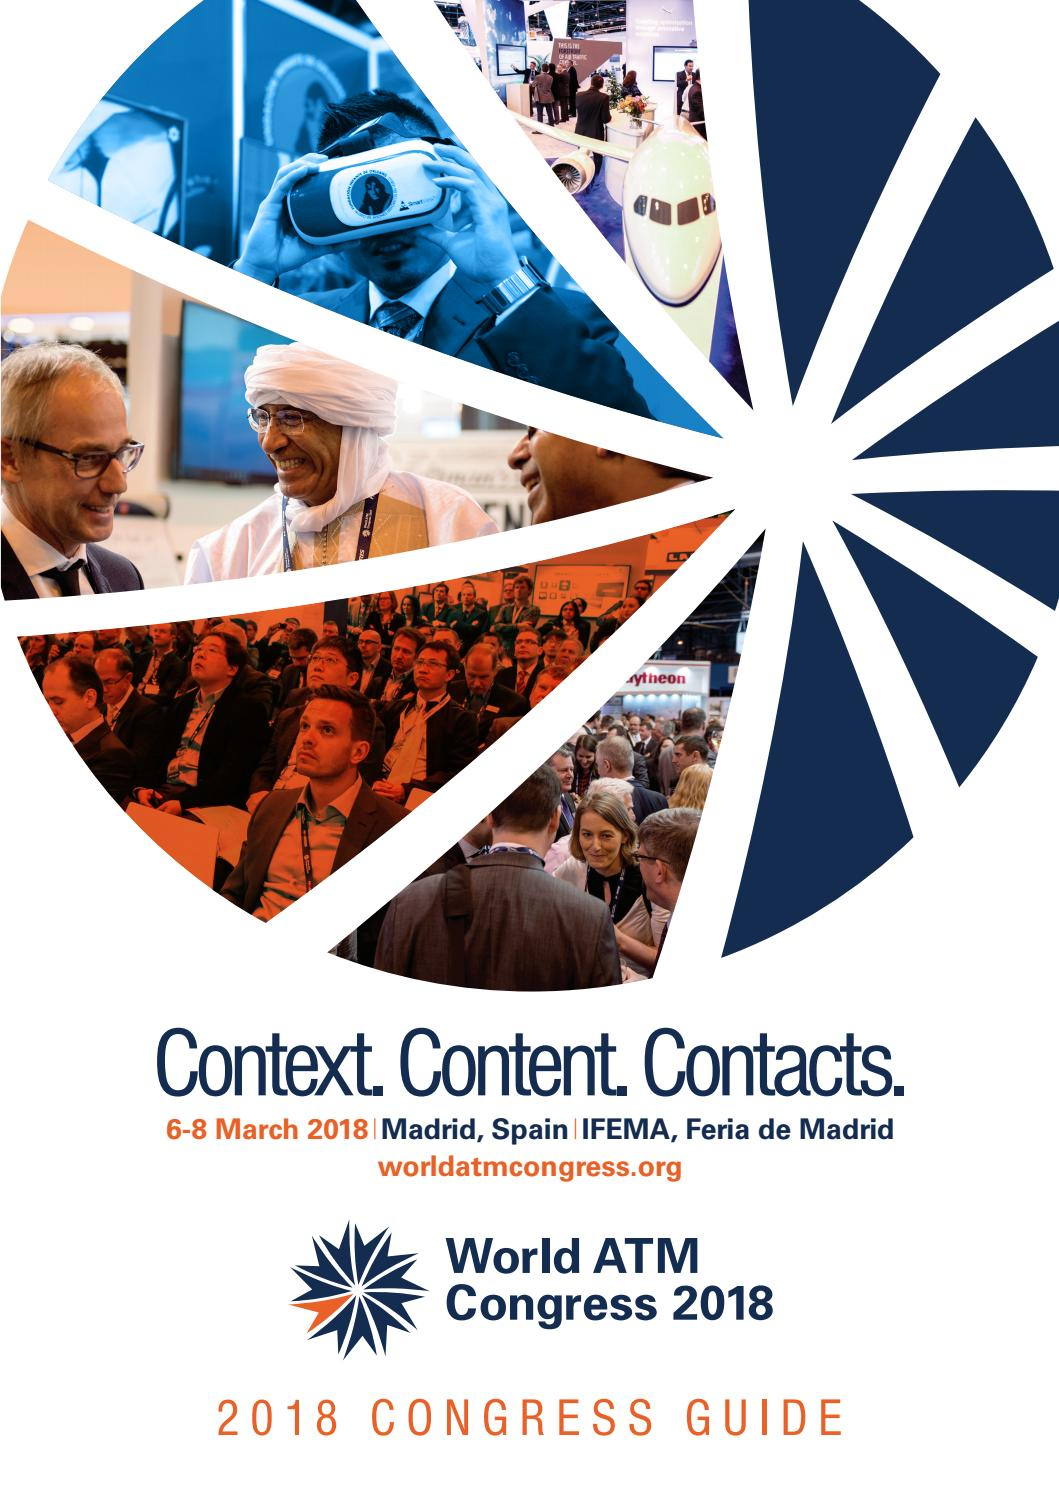 World Atm Congress Guide 2018 By Issuu Simulator Software Engineering Case Study